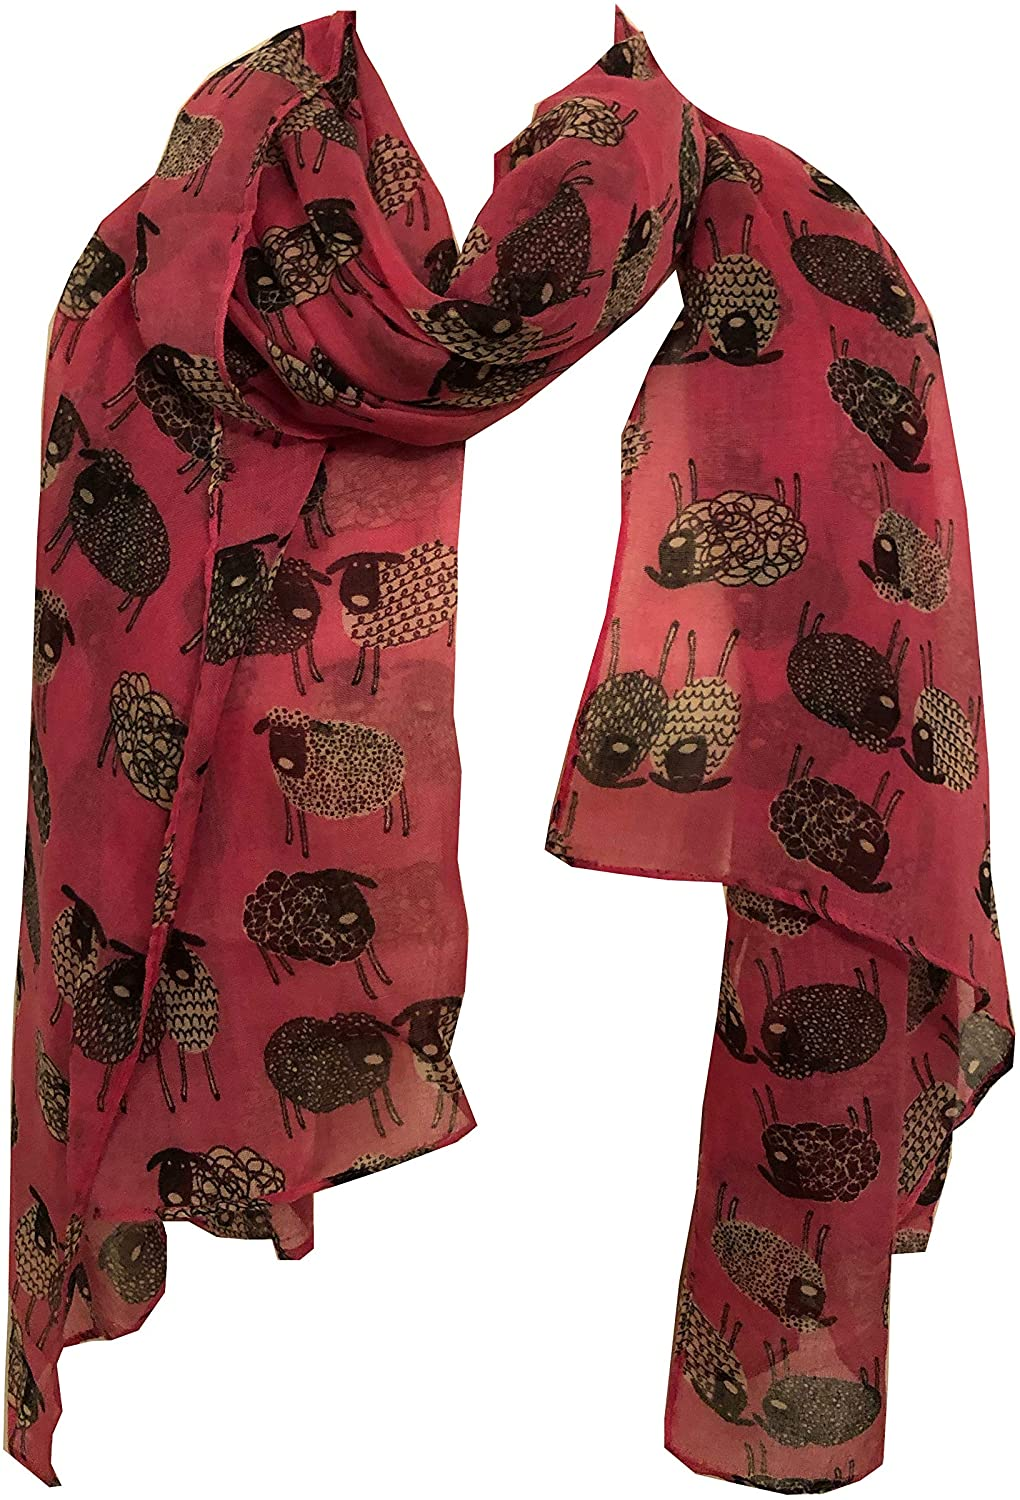 Pamper Yourself Now Pink Sketched Sheep Design Long Scarf